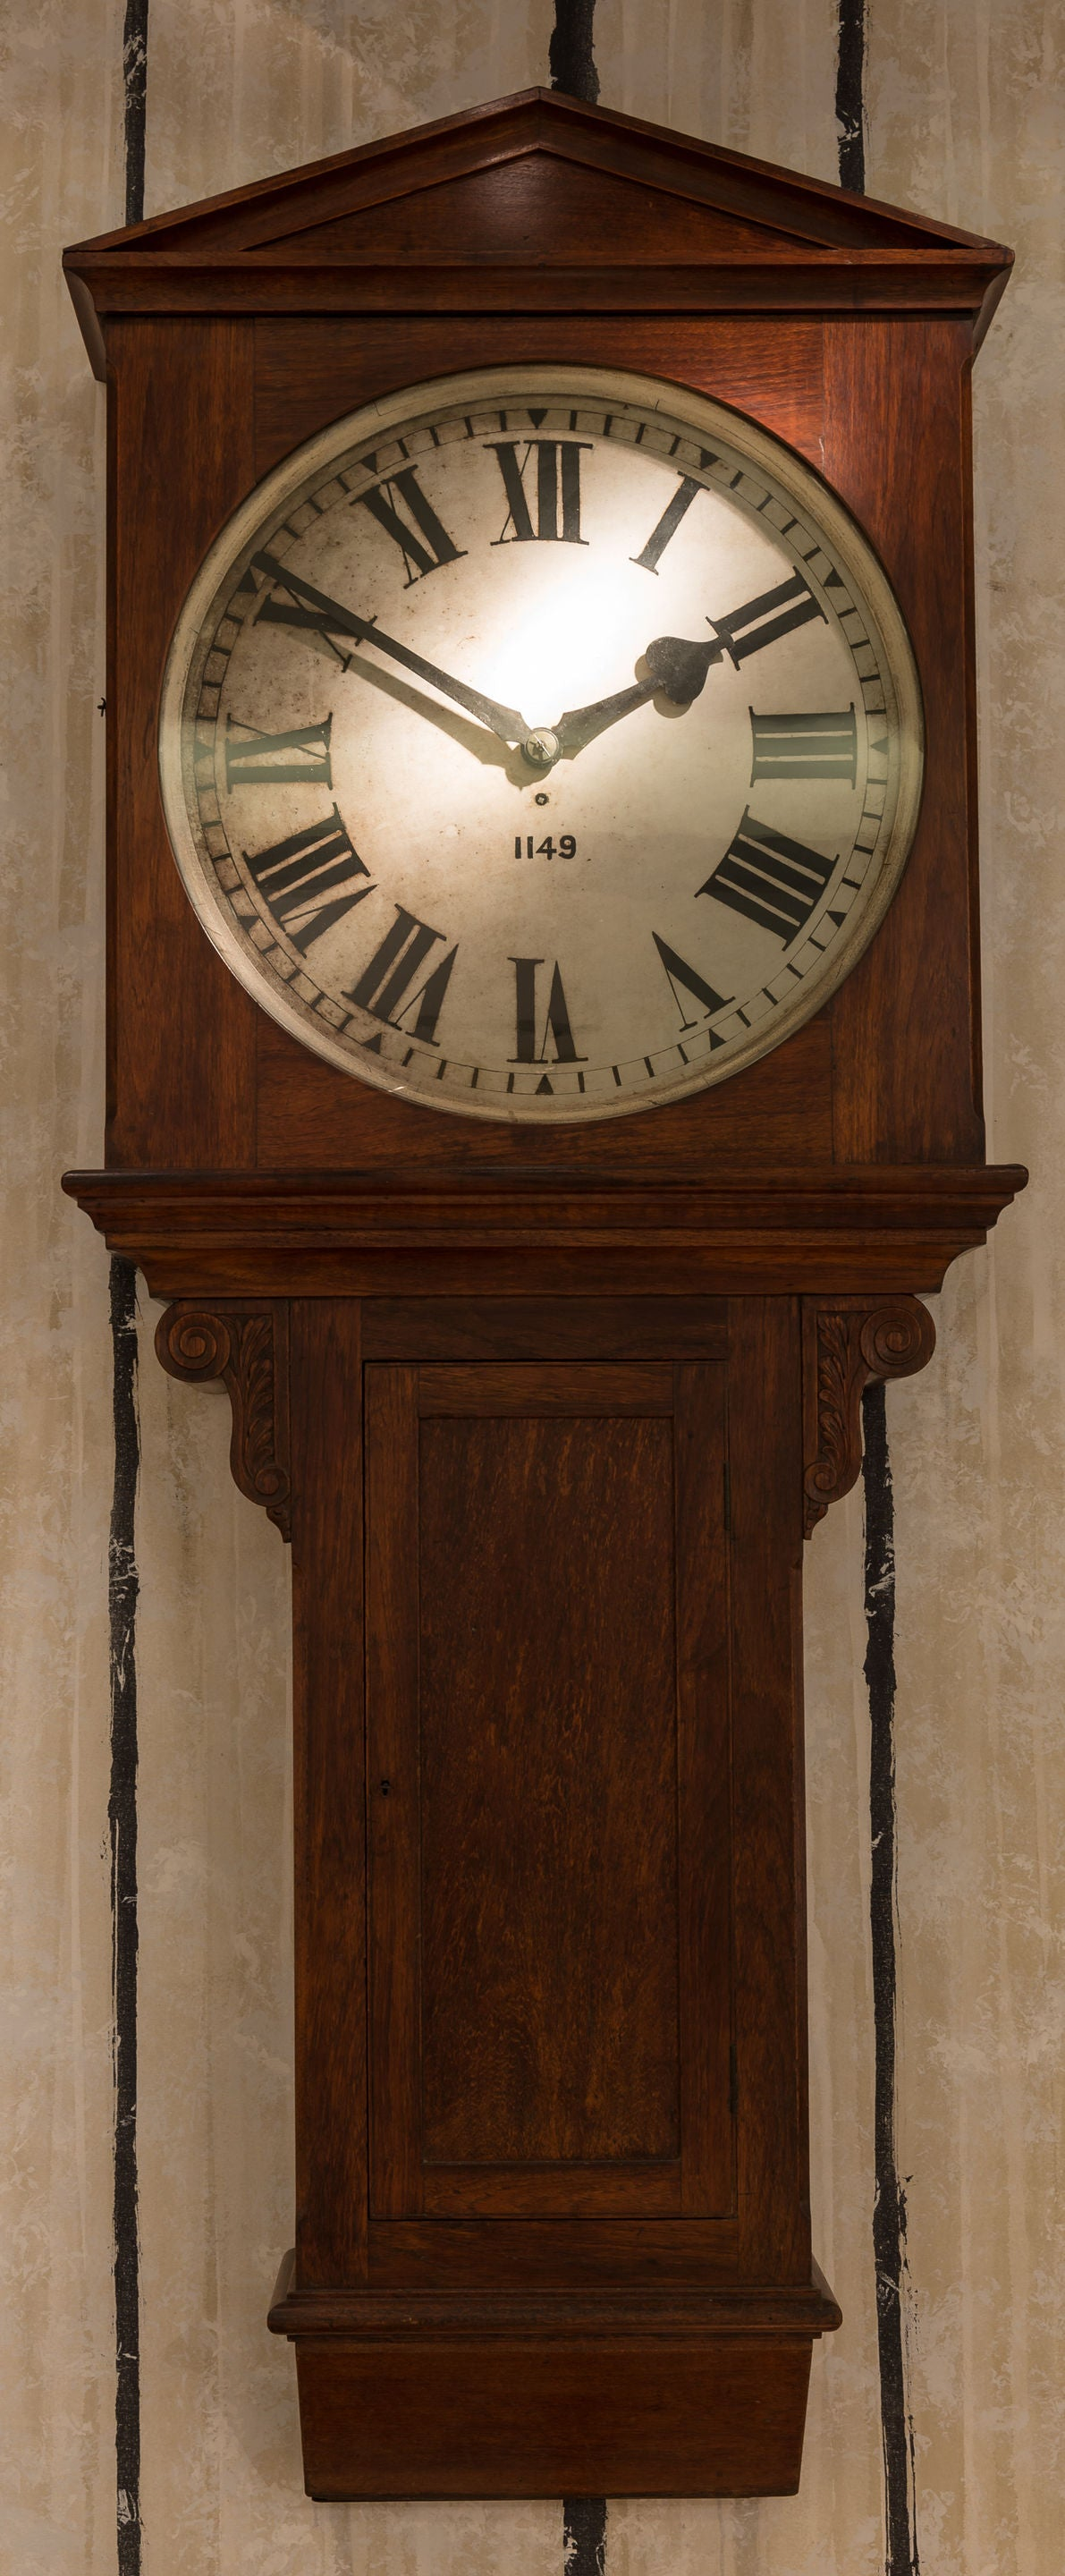 Rare and Magnificent Architectural Railway Clock